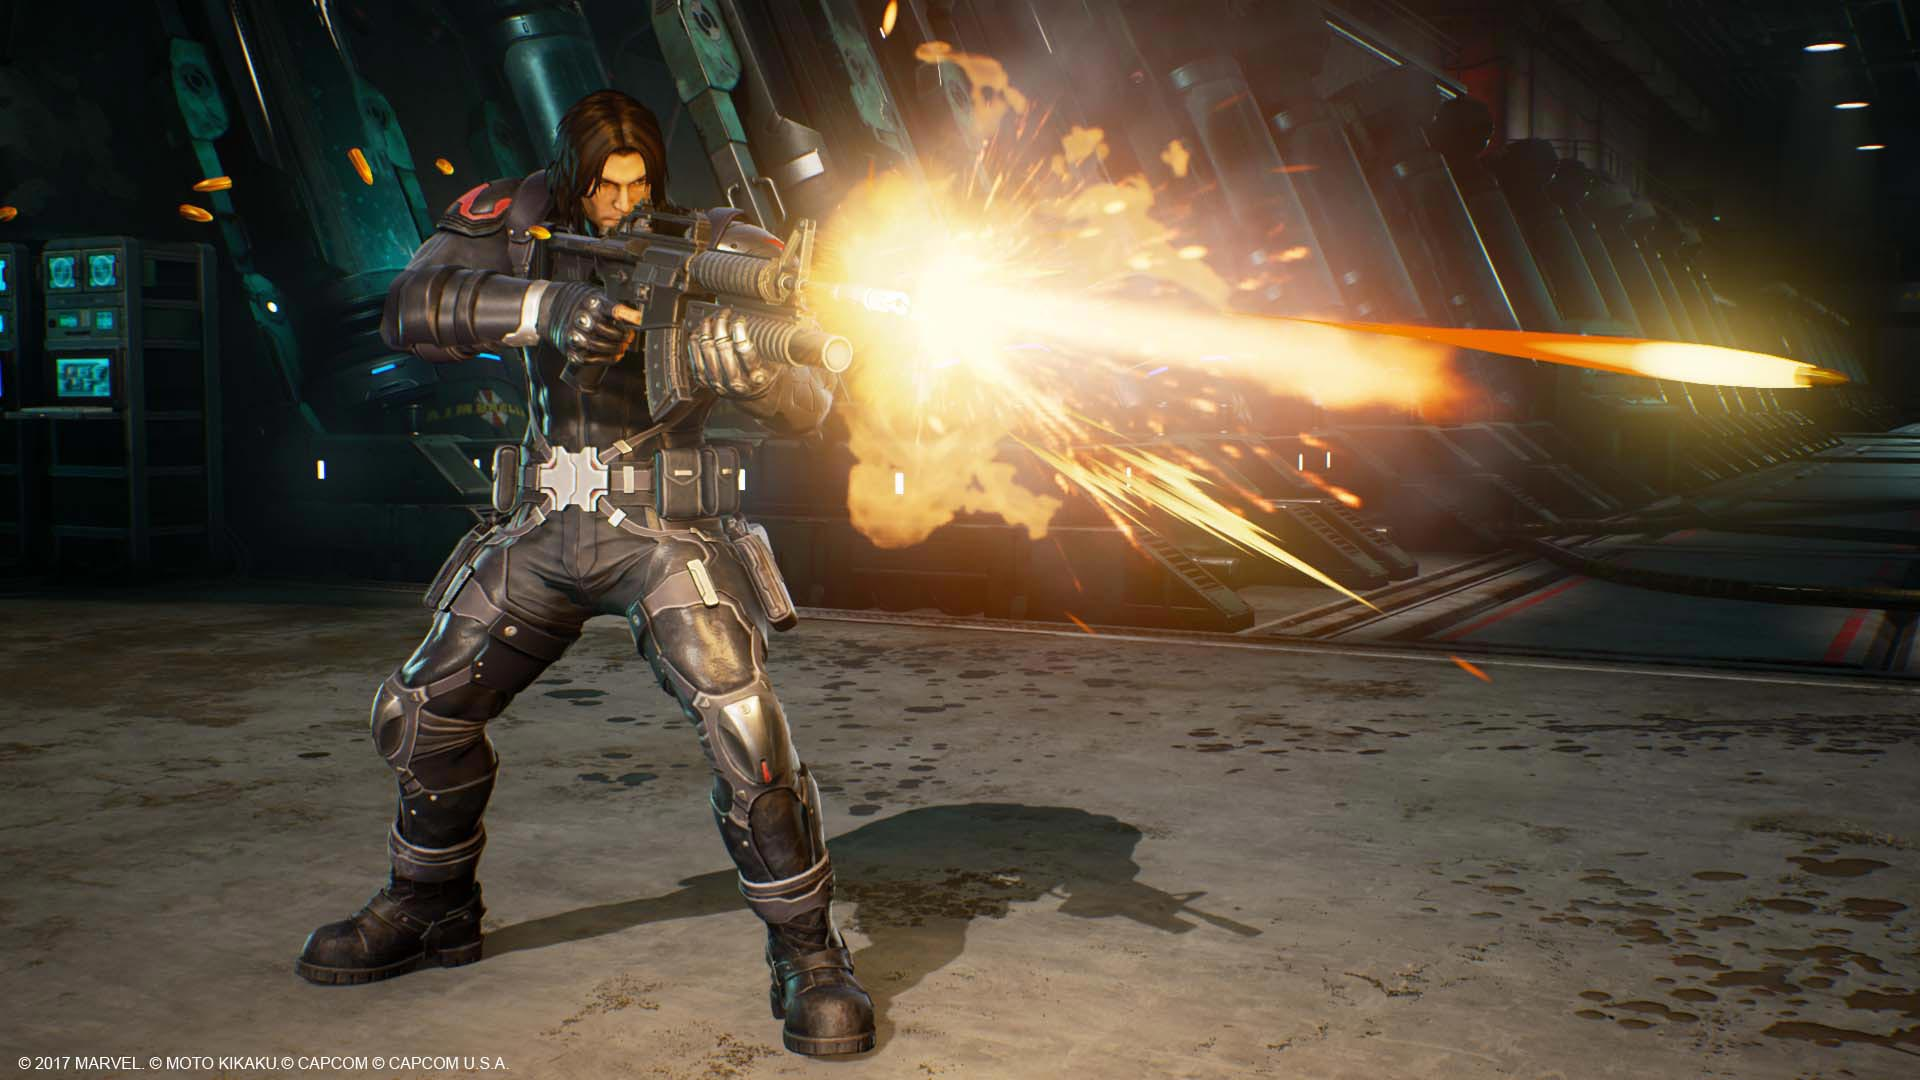 Venom, Black Widow, and Winter Solider in Marvel vs. Capcom: Infinite screenshots 3 out of 13 image gallery